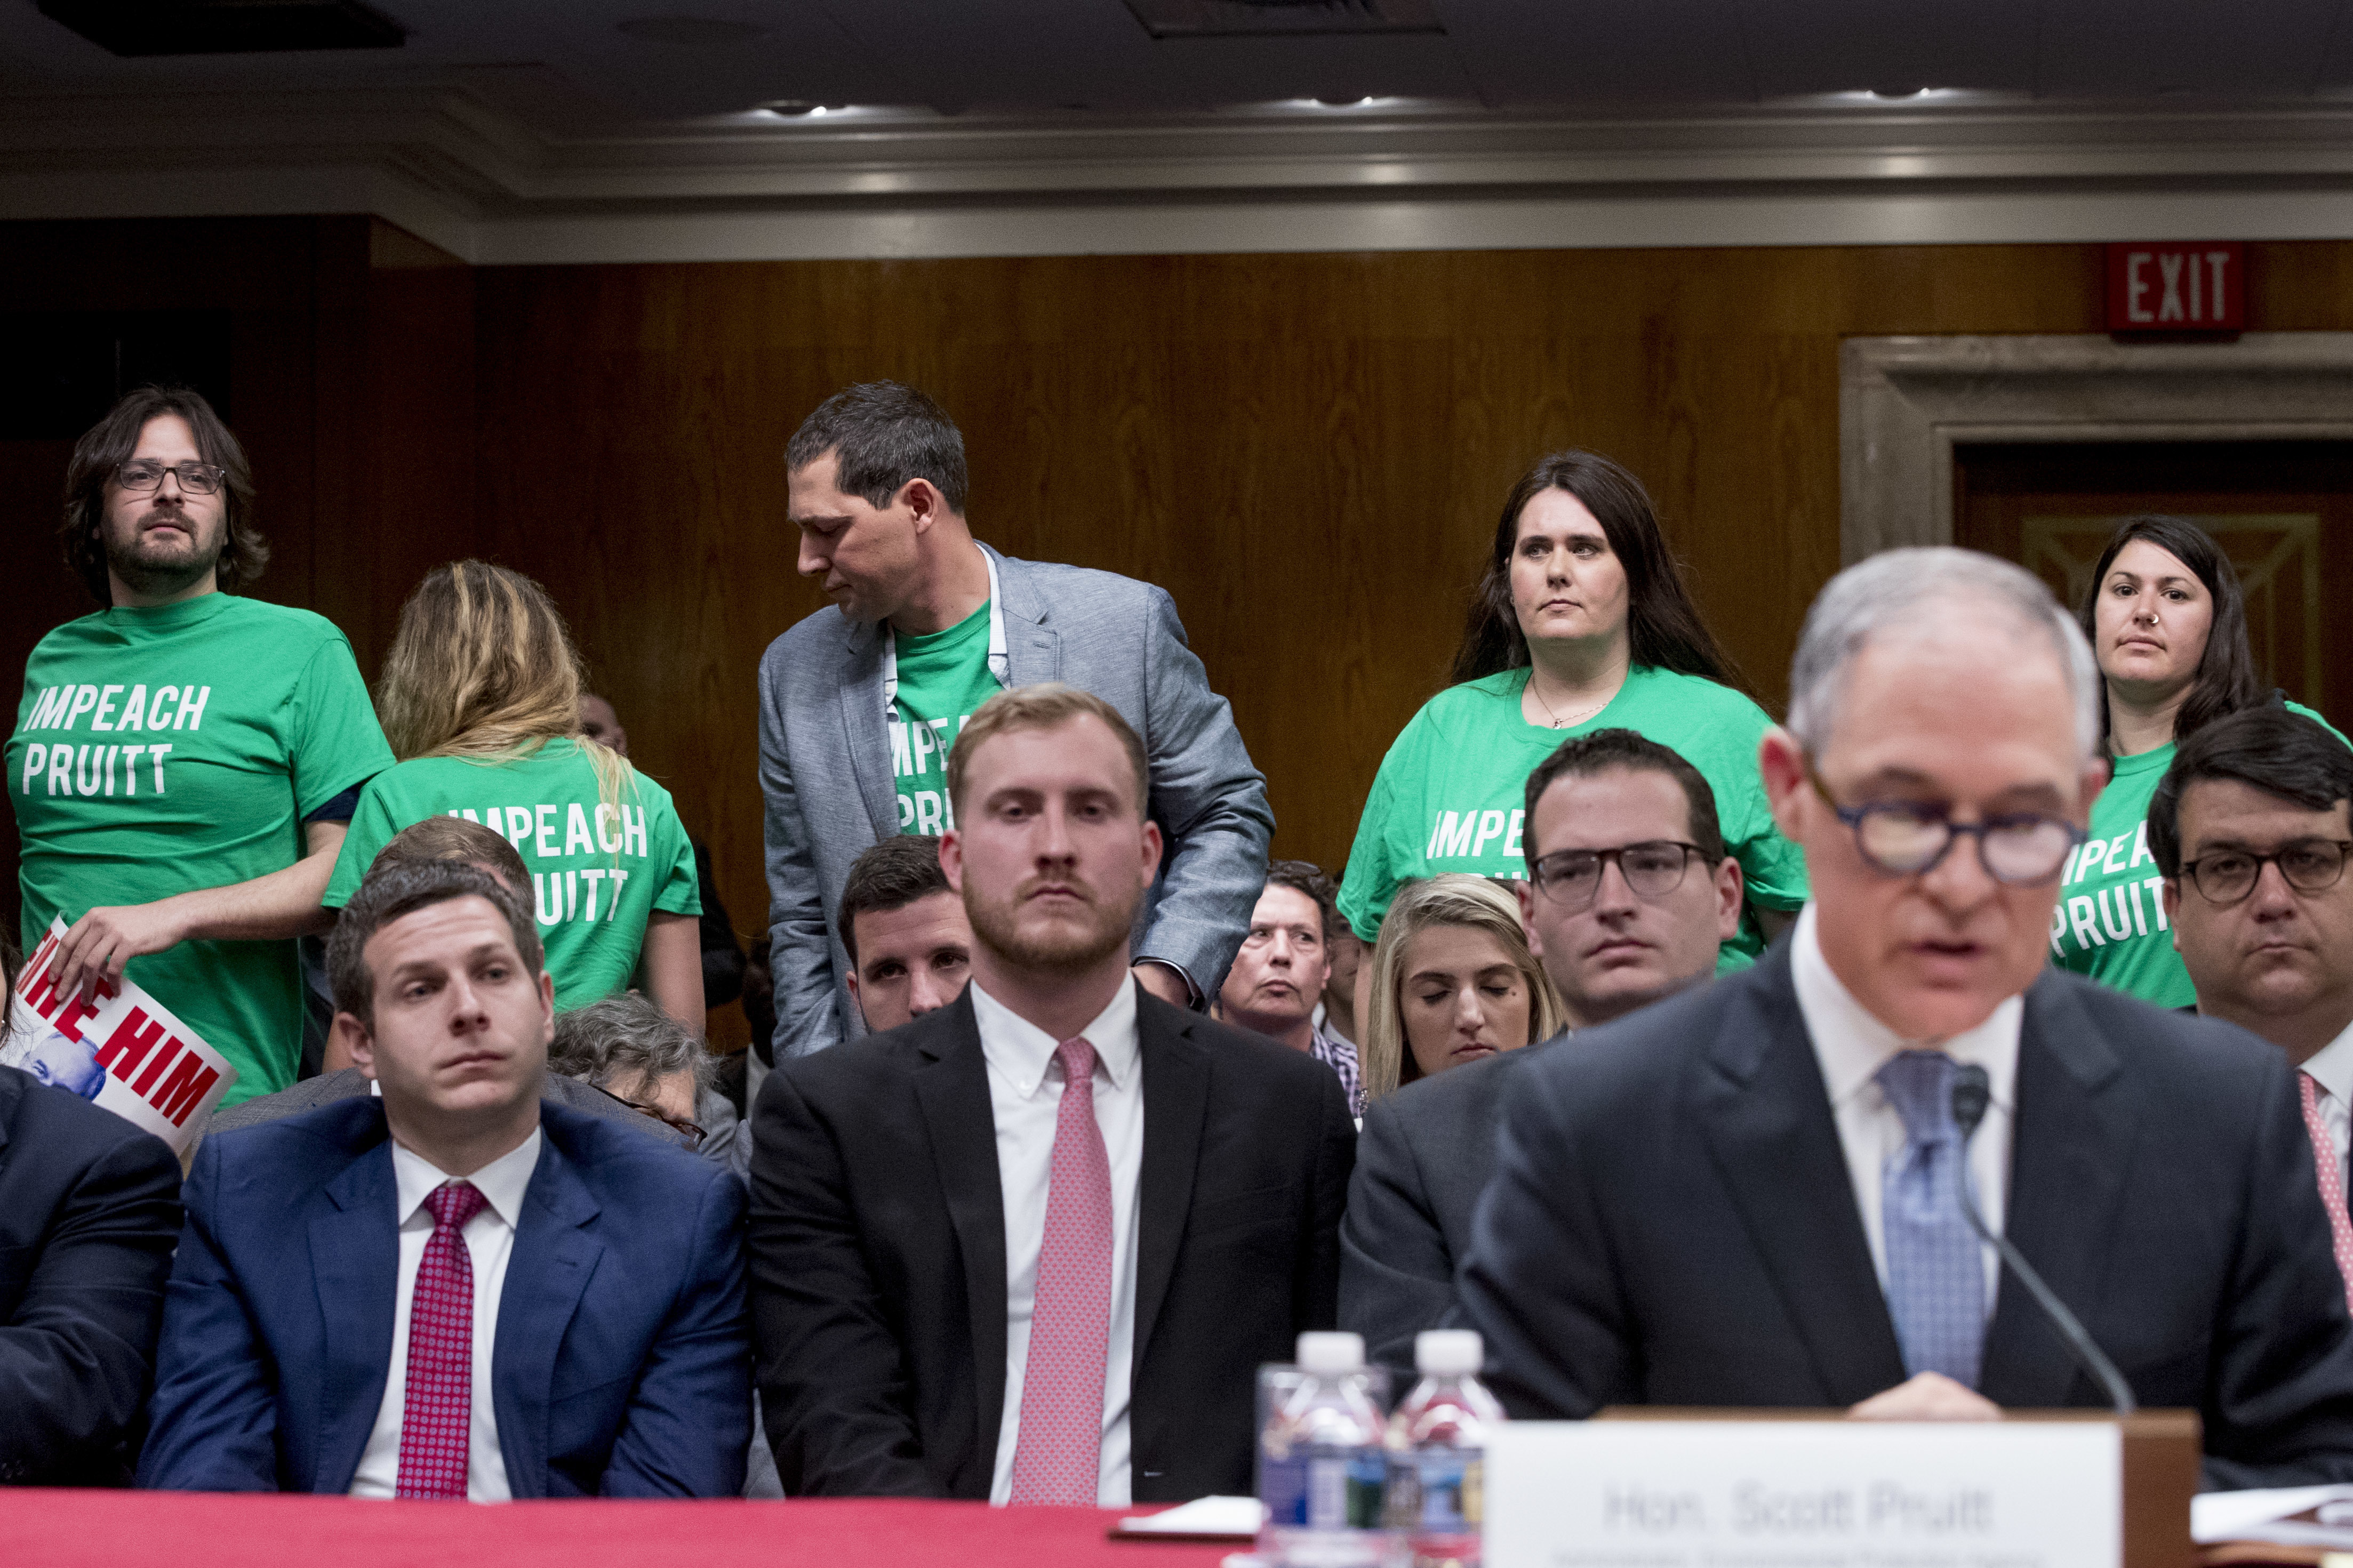 """Members of the audience wear shirts that read """"Impeach Pruitt"""" as EPA Administrator Scott Pruitt, right, testifies before a Senate Appropriations subcommittee on budget on Capitol Hill in Washington,  May 16, 2018."""